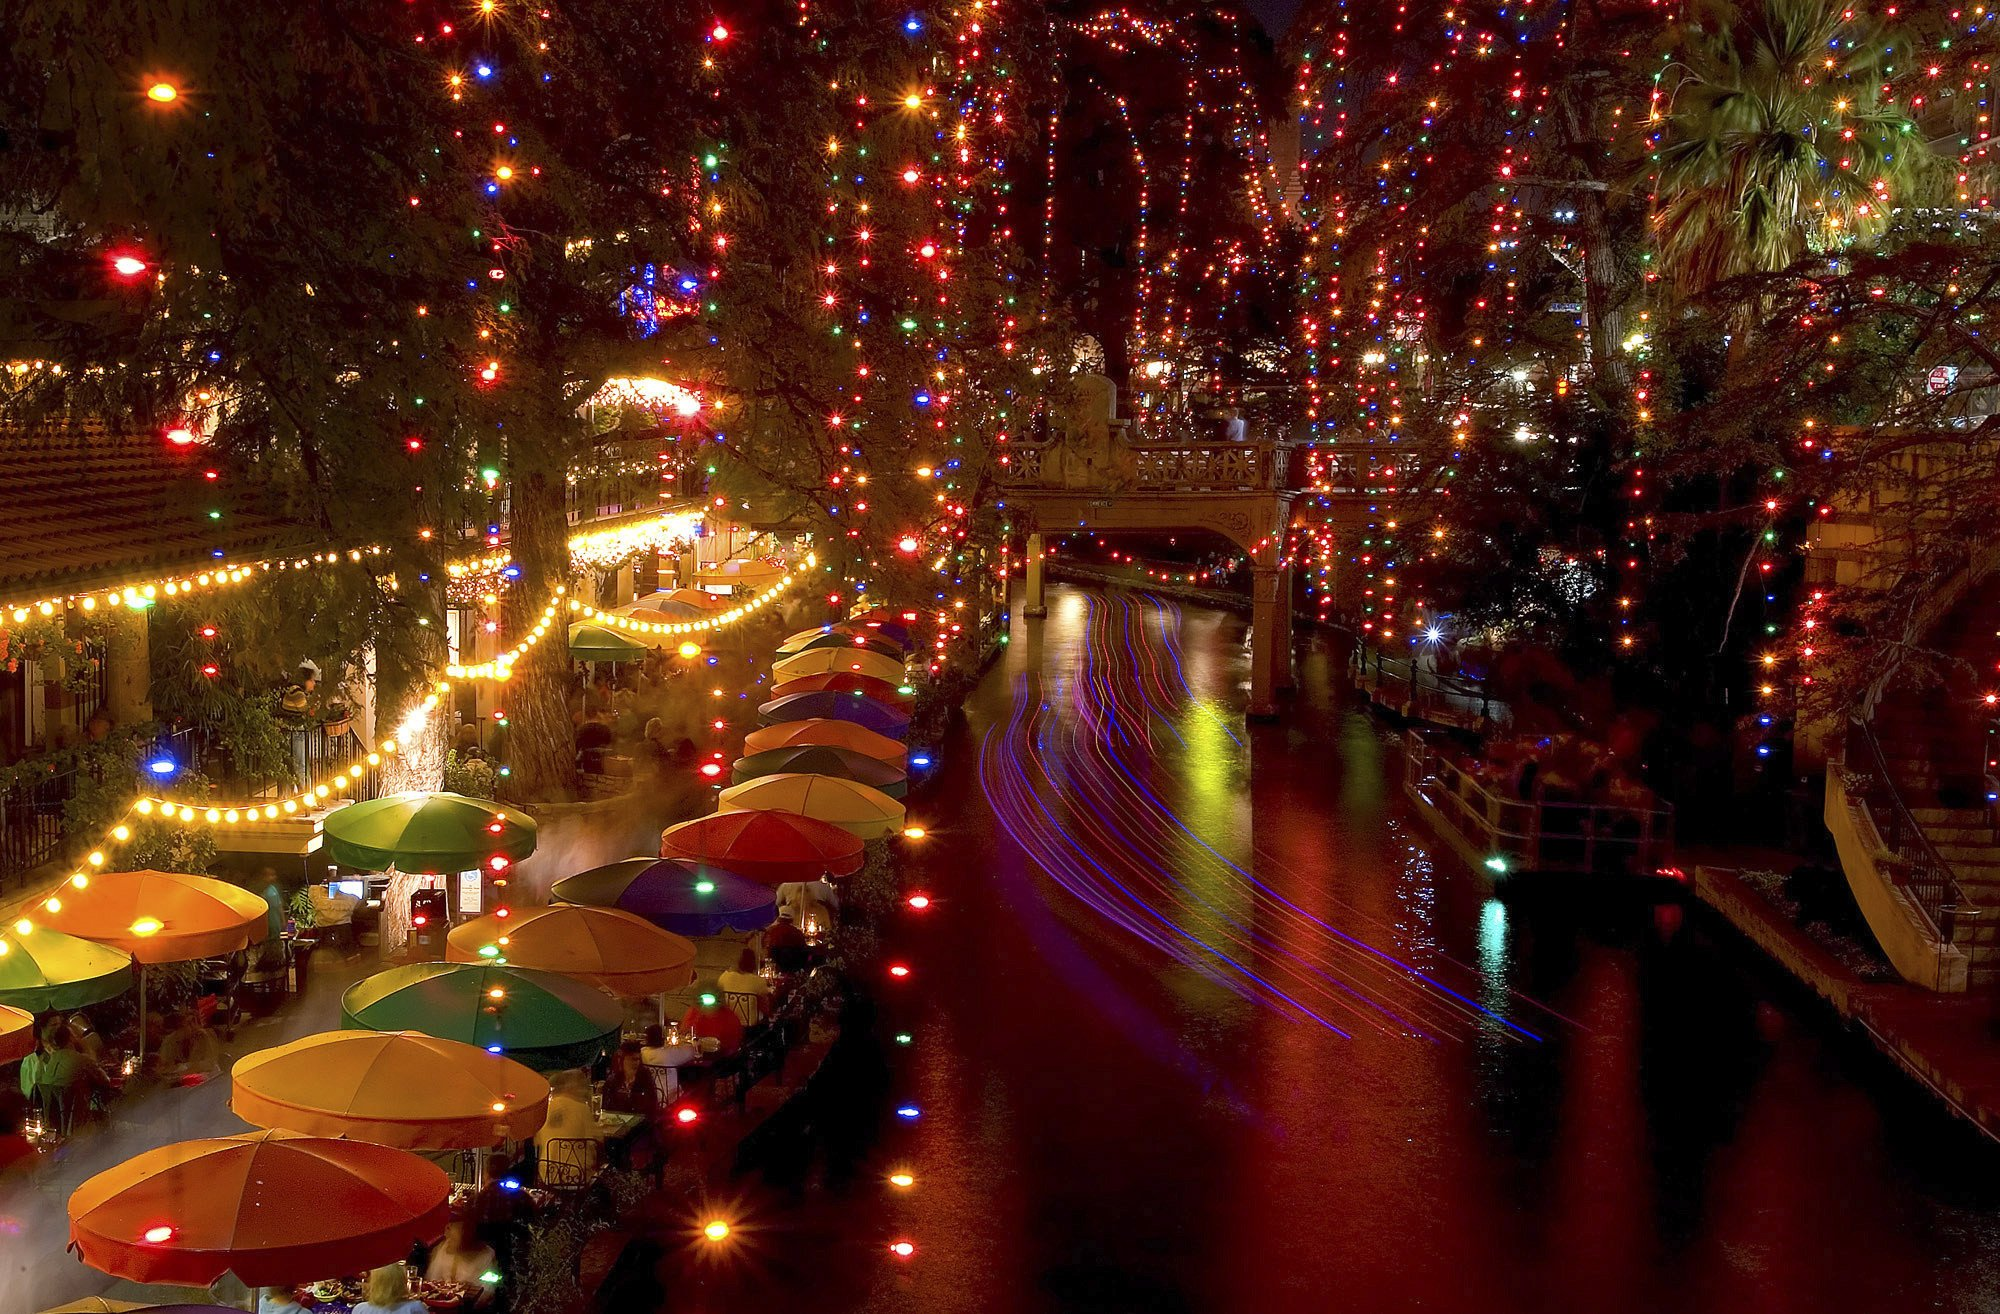 World Of Decor San Antonio Inspirational 19 Of the Best Places to See Holiday Lights In San Antonio Central Texas This Year San